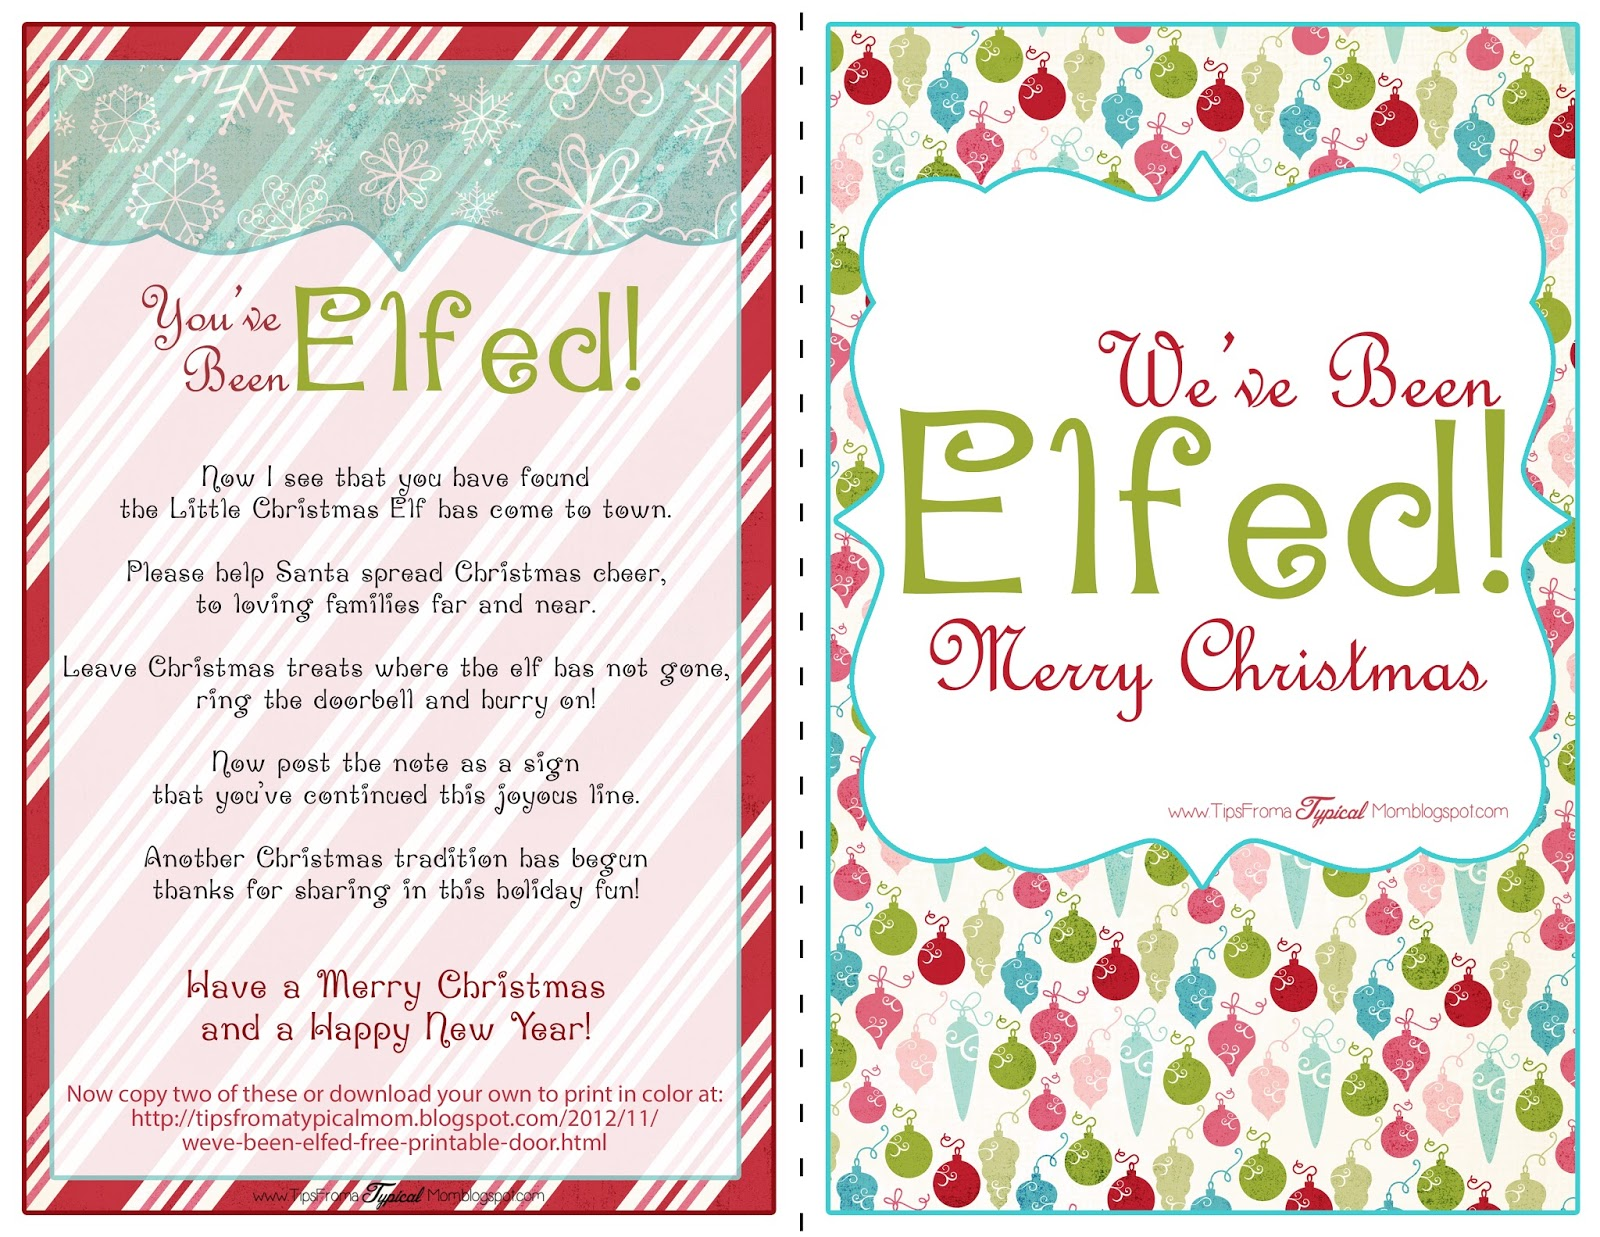 photo regarding You Ve Been Elfed Printable identified as Weve Been Elfed! Absolutely free Printable- Doorway Signs or symptoms and